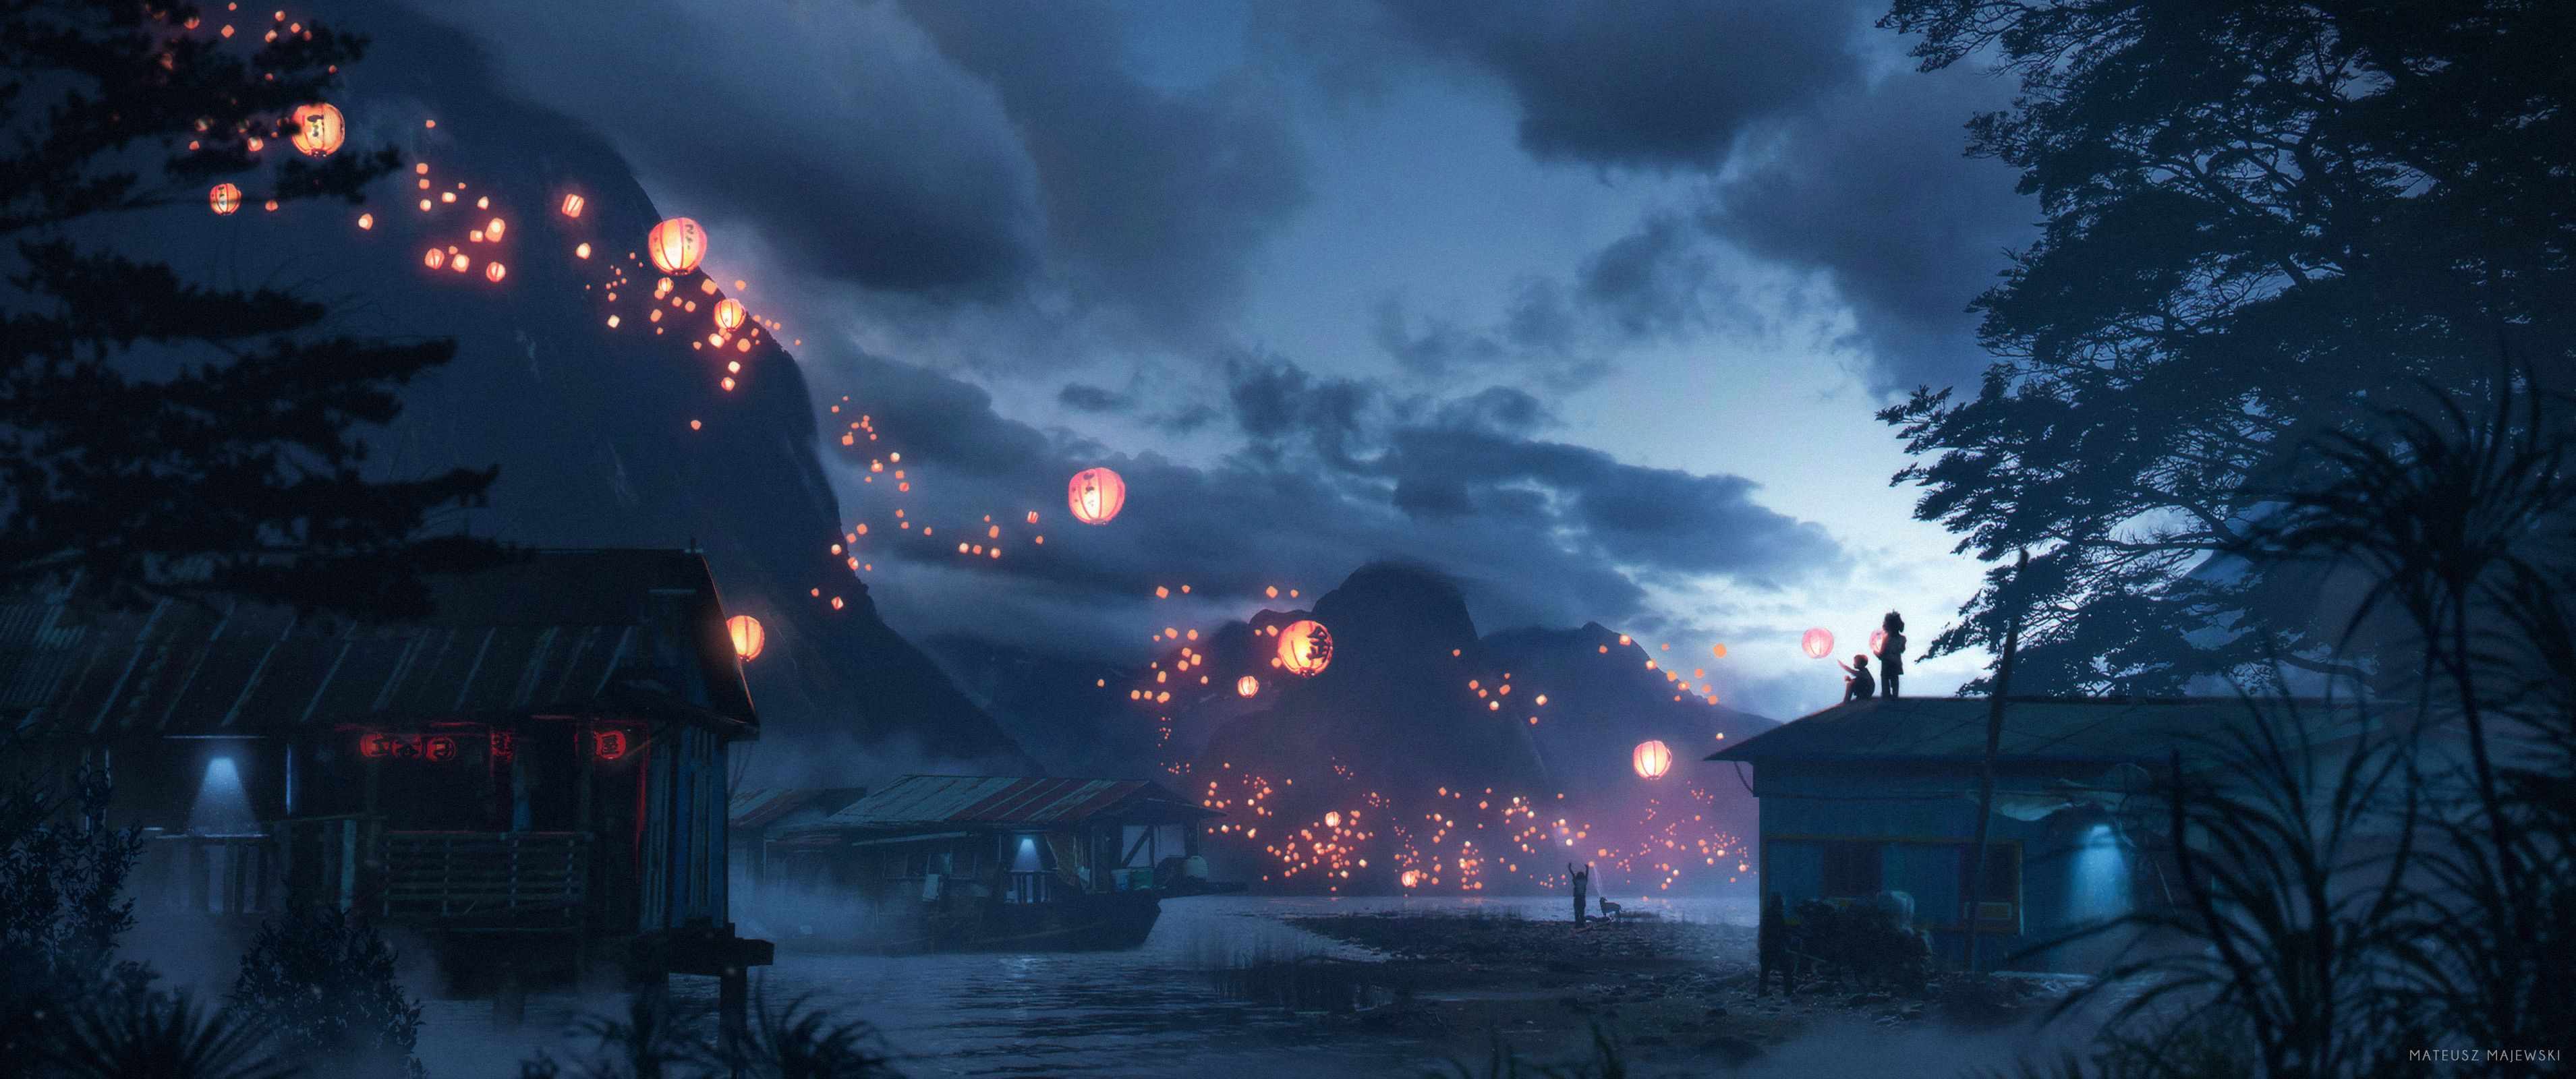 Pin By Happy On Anime In 2020 Anime Scenery Wallpaper Scenery Wallpaper Anime Scenery